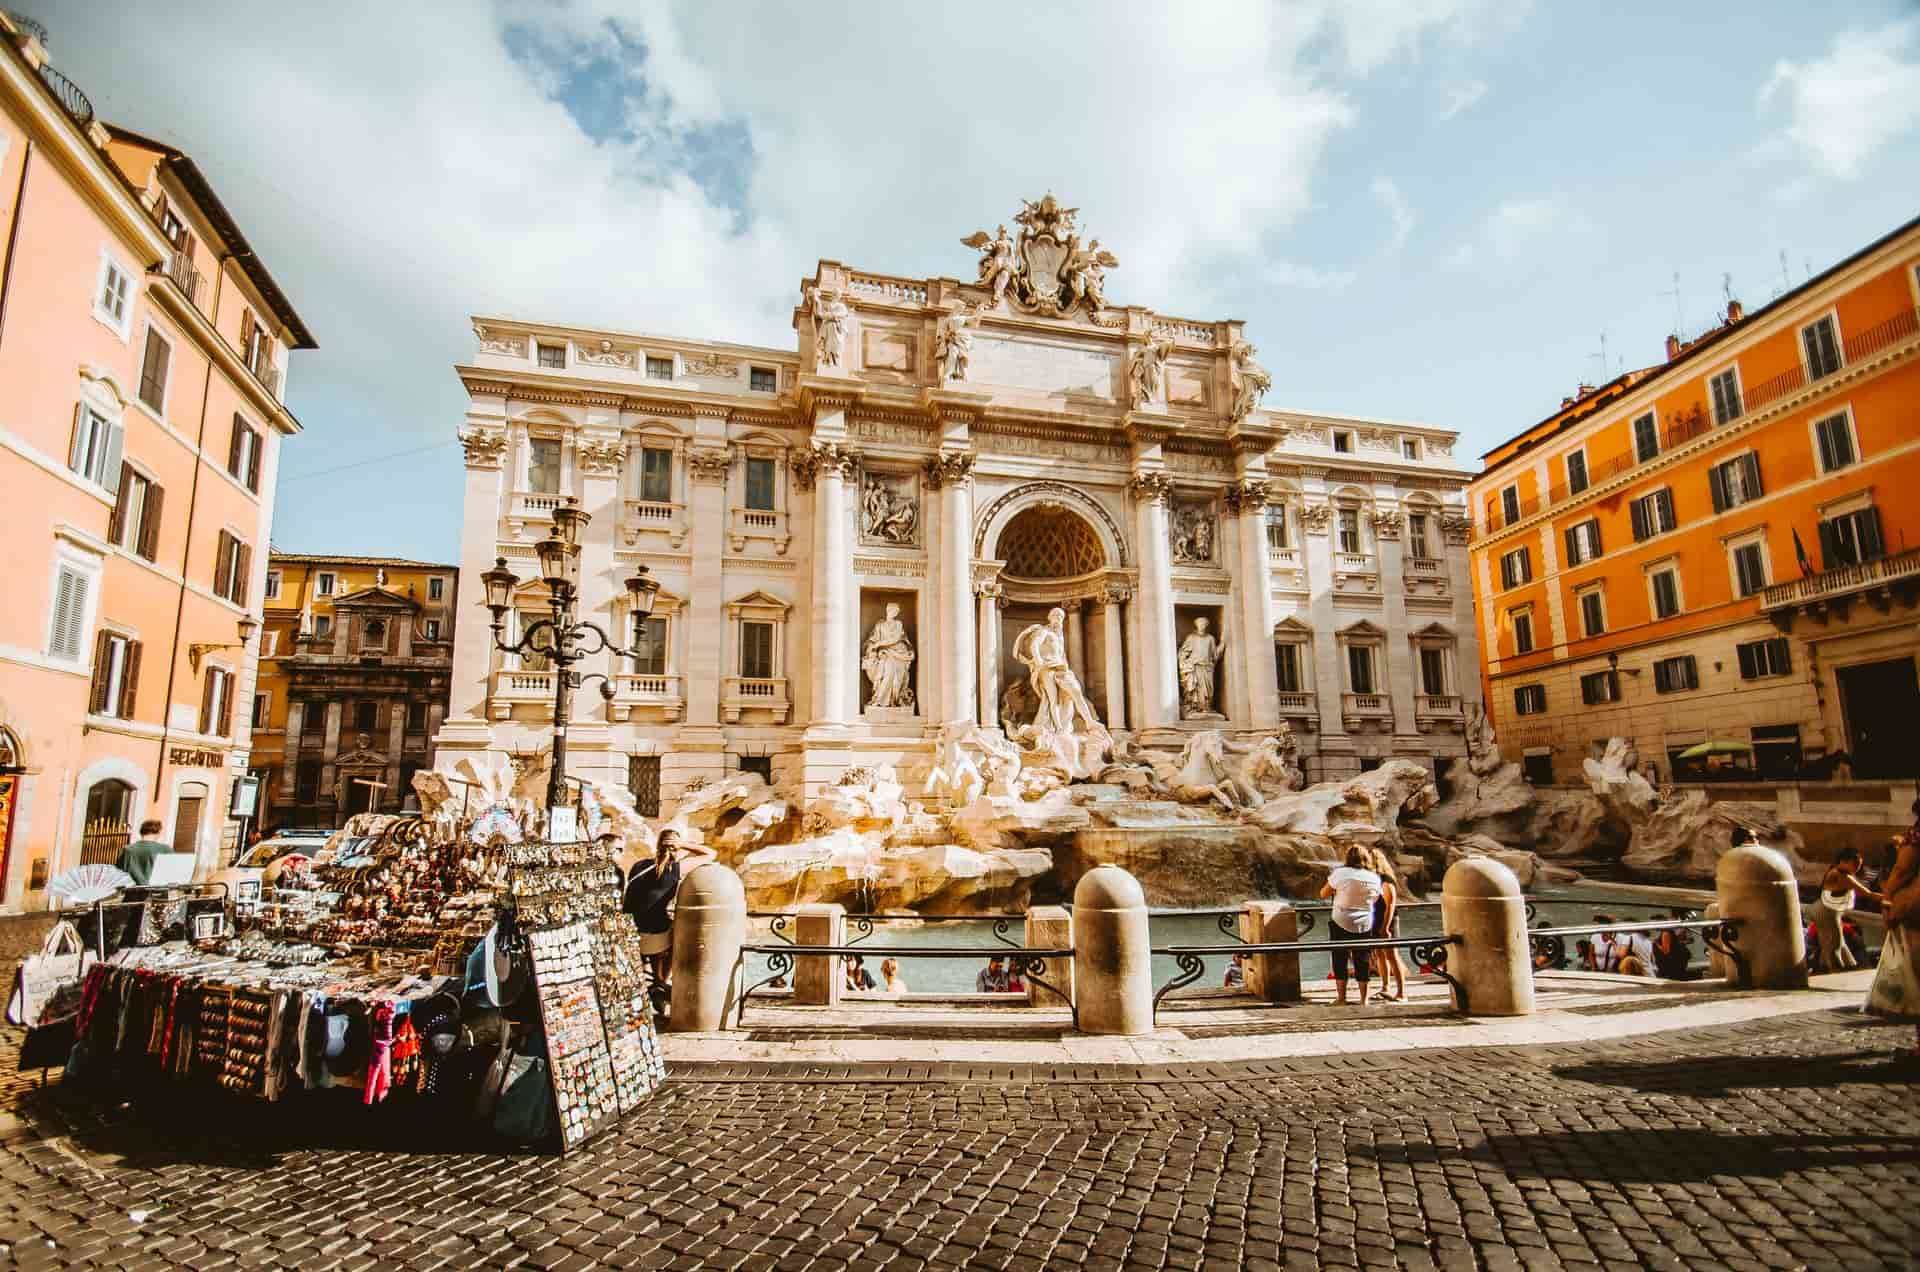 Hop-On Hop-Off Busses Rome Guide: Should I Use Them To Travel?